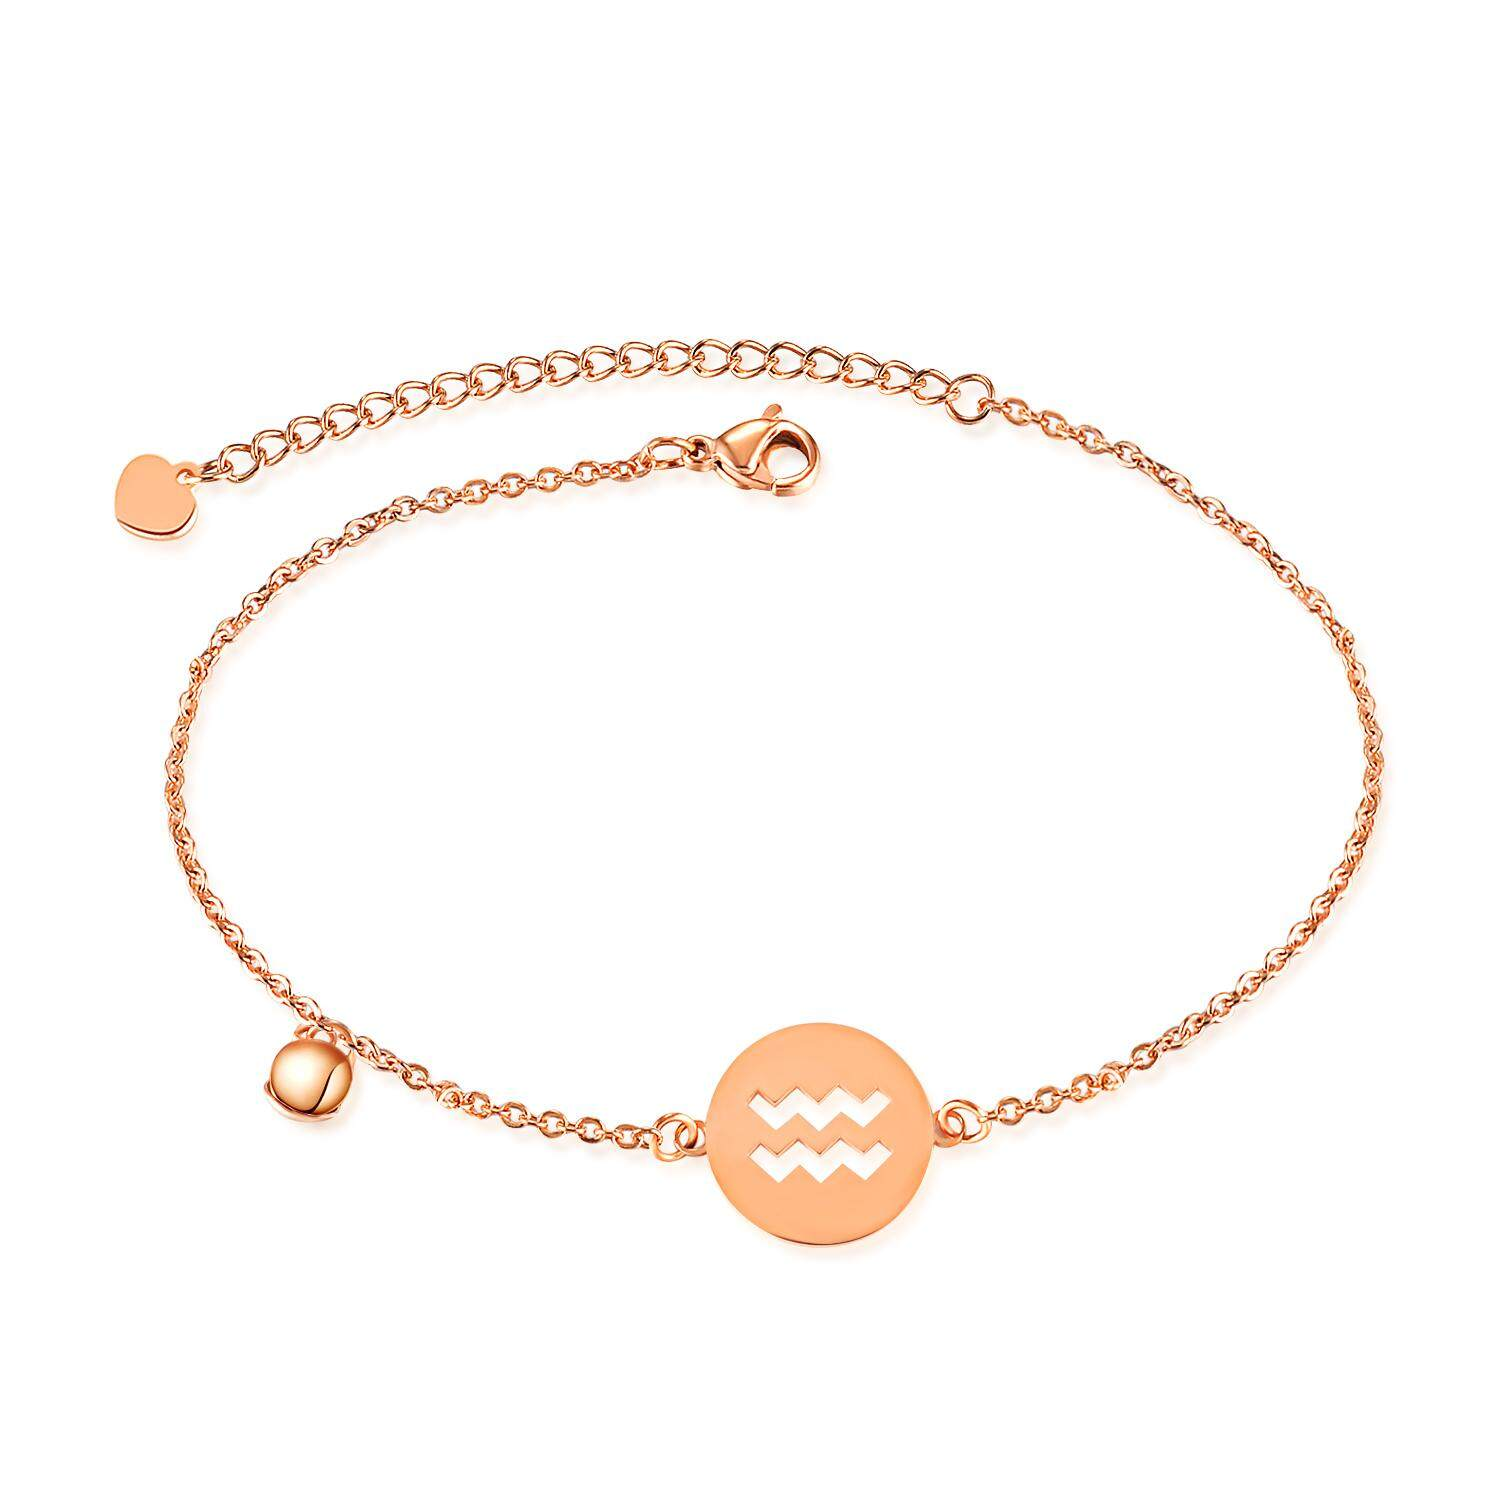 Women's Anklet Rose Gold Stainless Steel Chain Constellation of Aquarius 21+5.5cm - intl